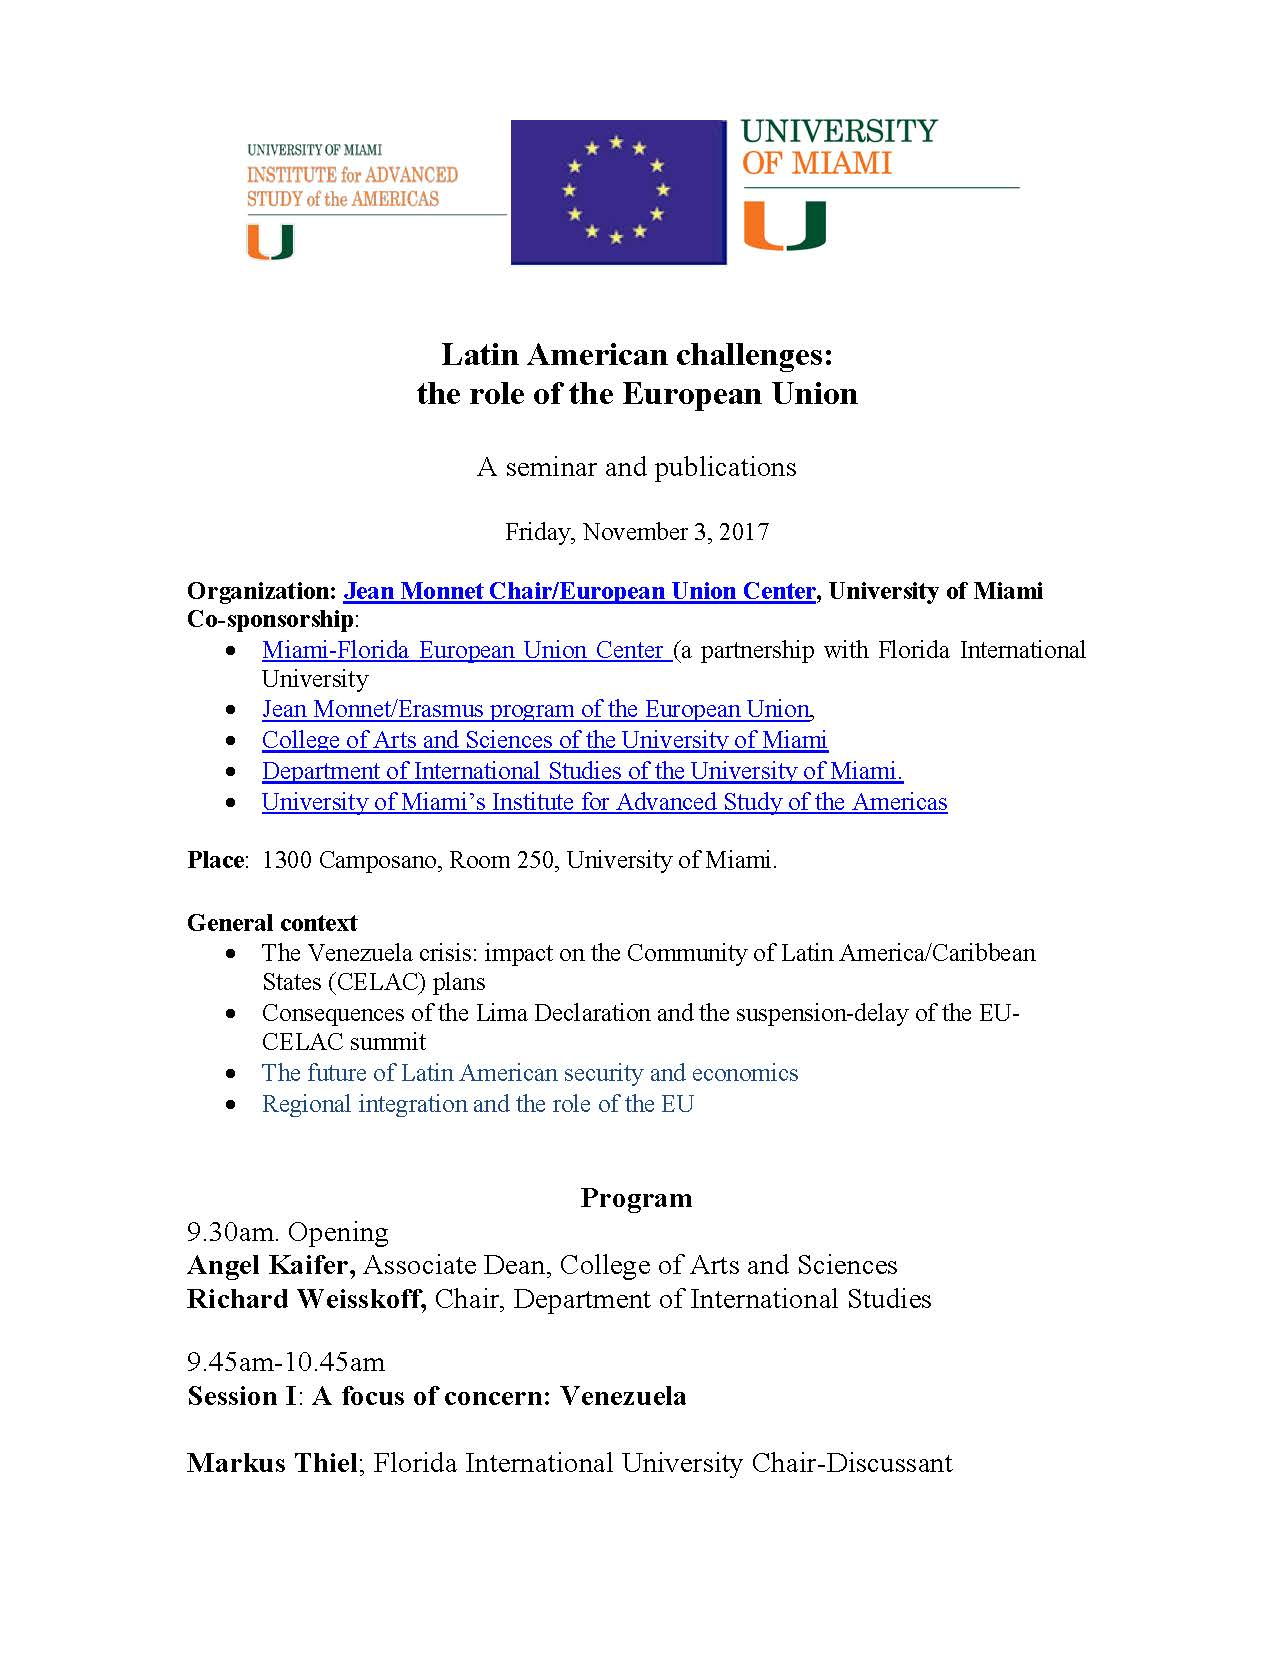 Latin American challenges: the role of the European Union""